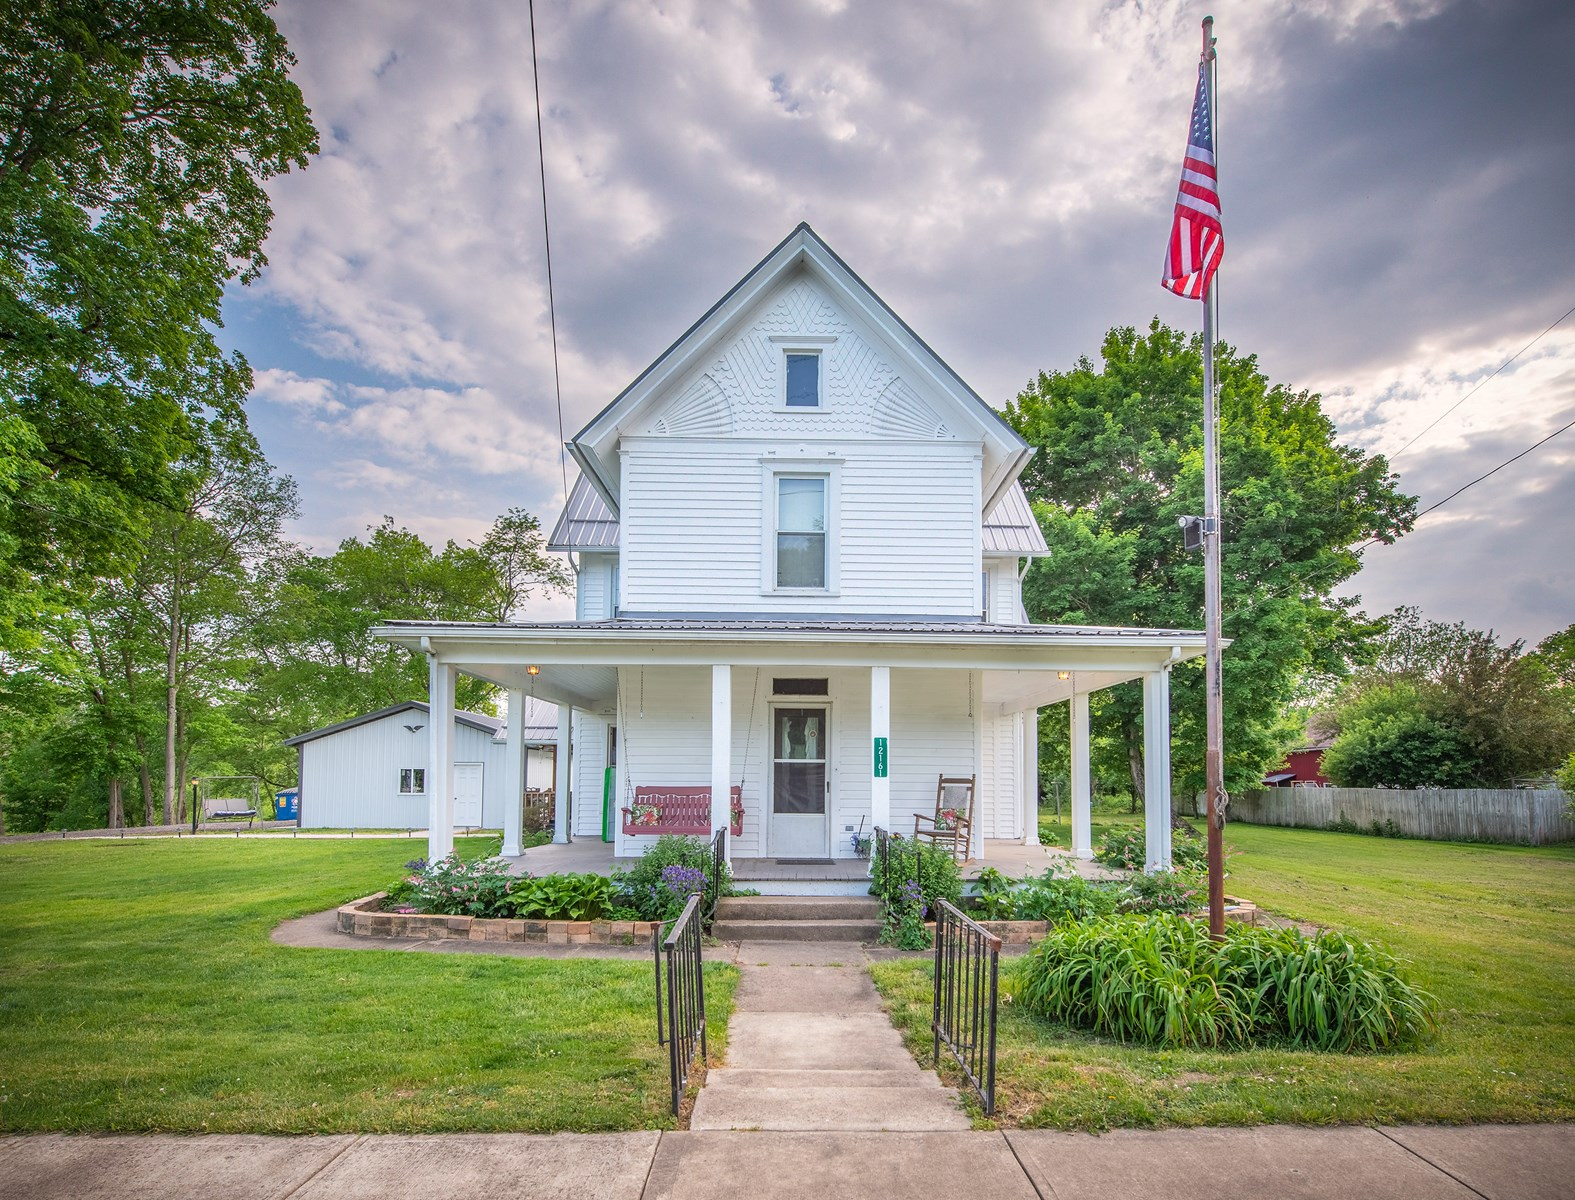 Make it a Historical Home! Bed & Breakfast! Airbnb!